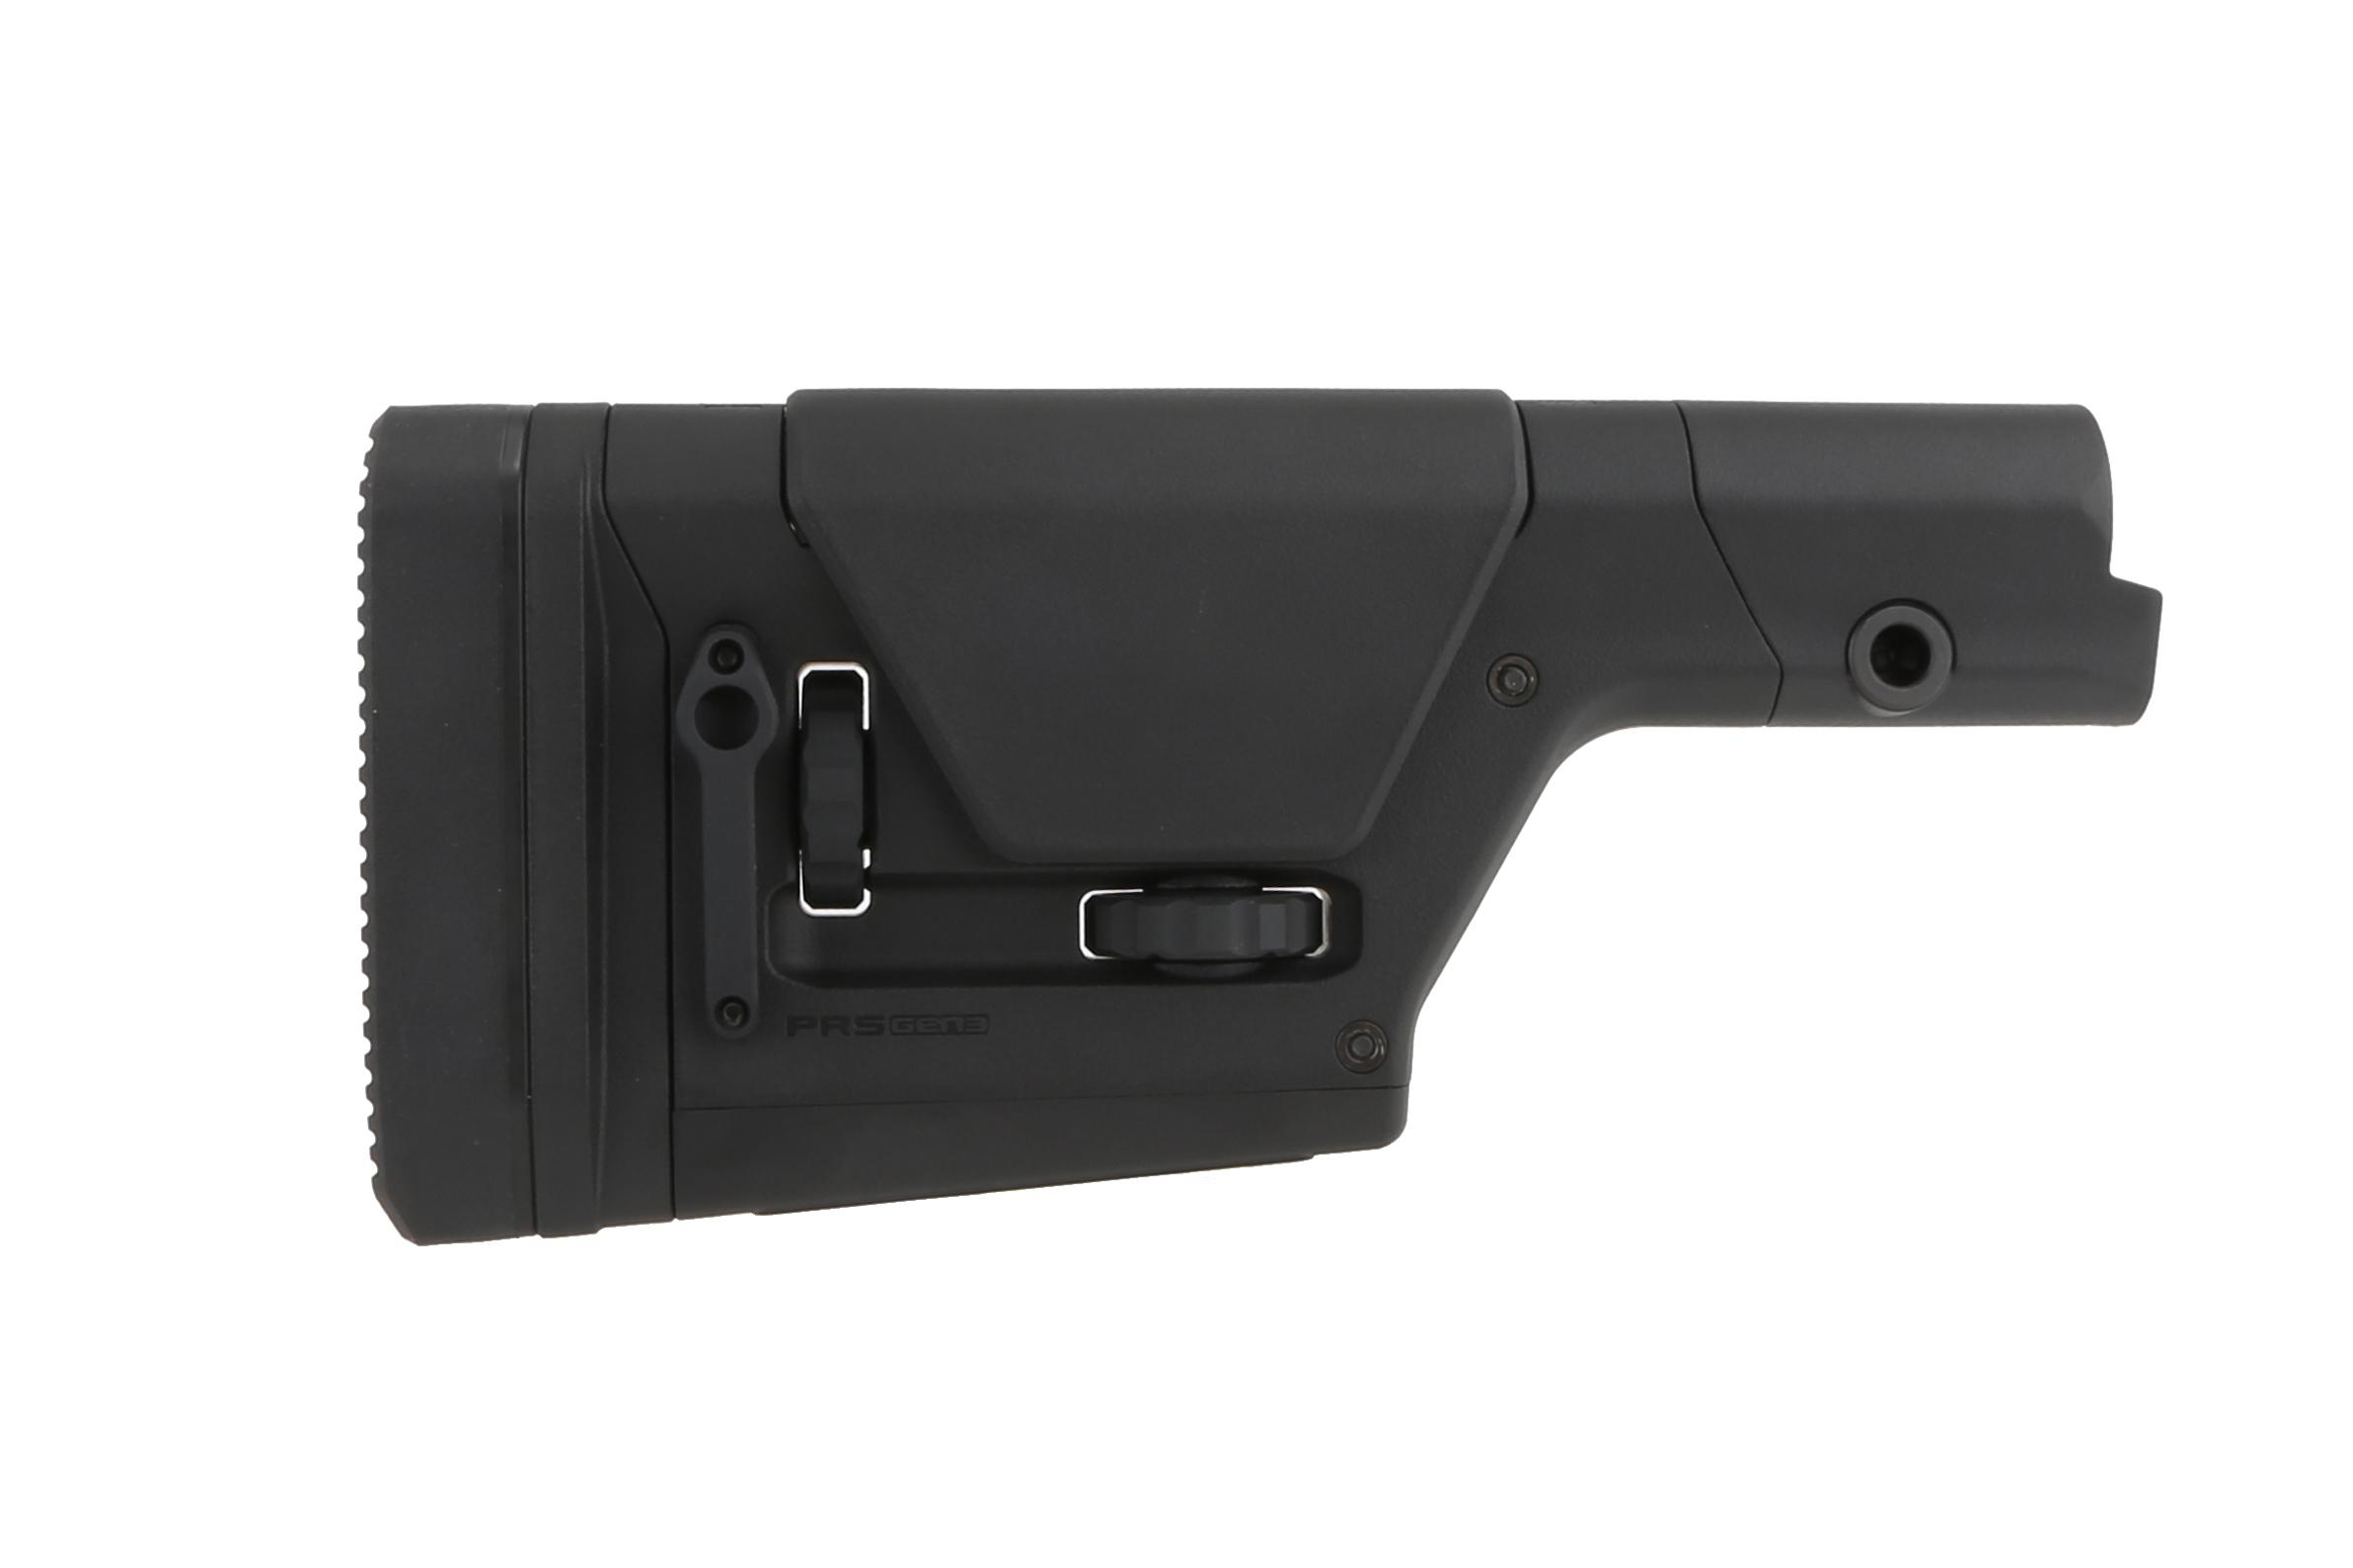 The Magpul PRS Gen 3 precision rifle stock features tool-less length of pull and cheek rest adjustability